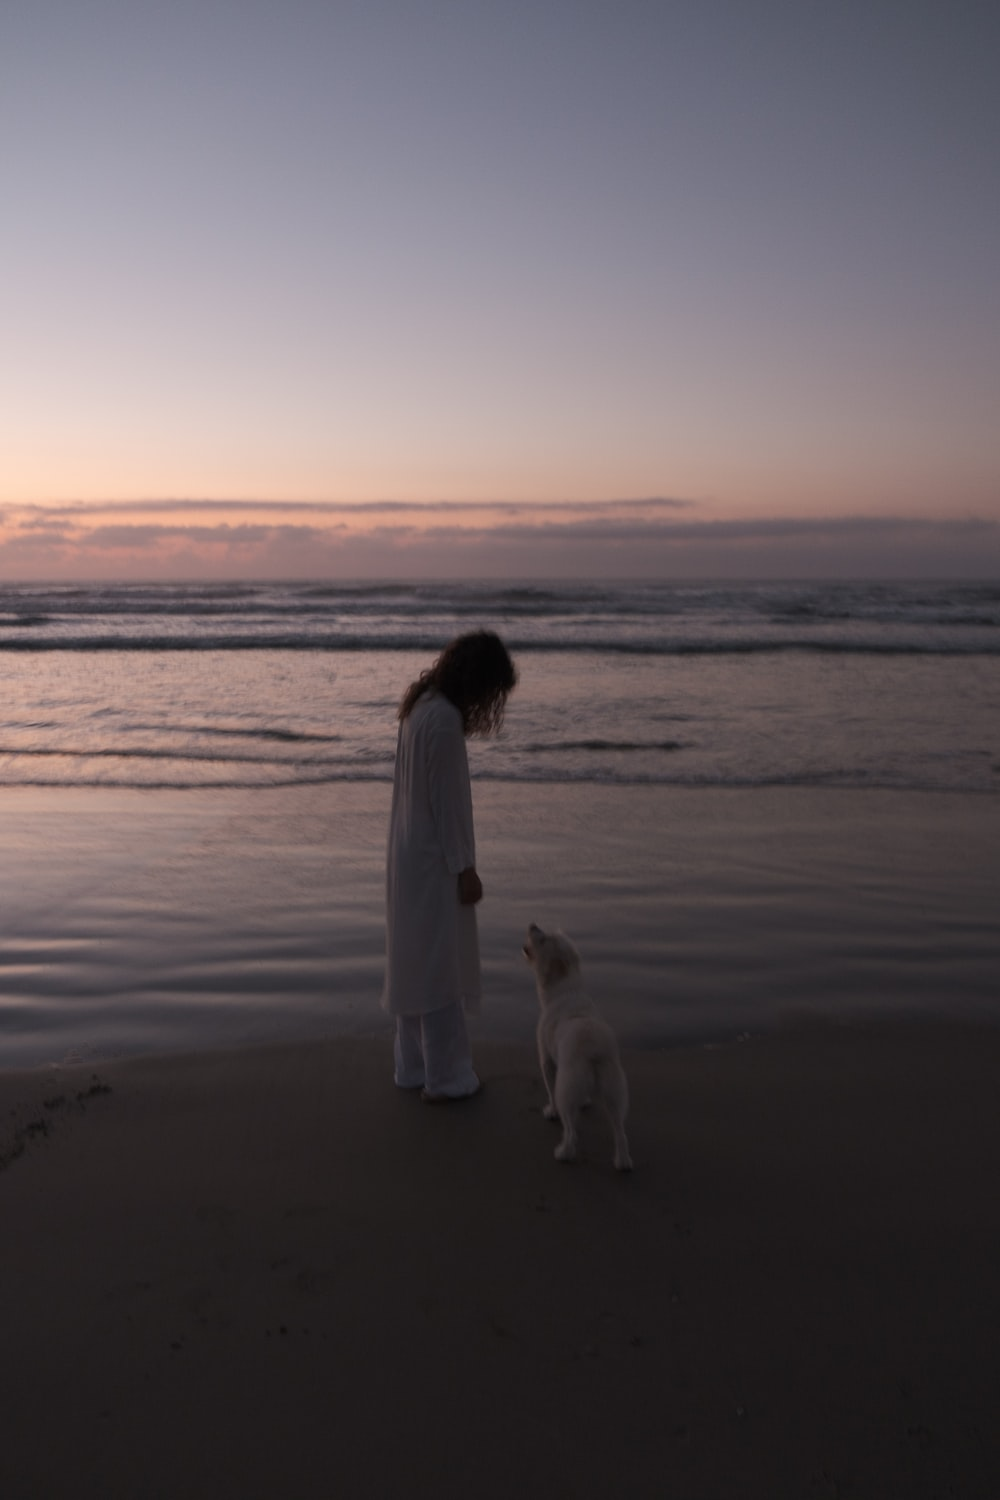 woman in white dress standing on seashore during sunset